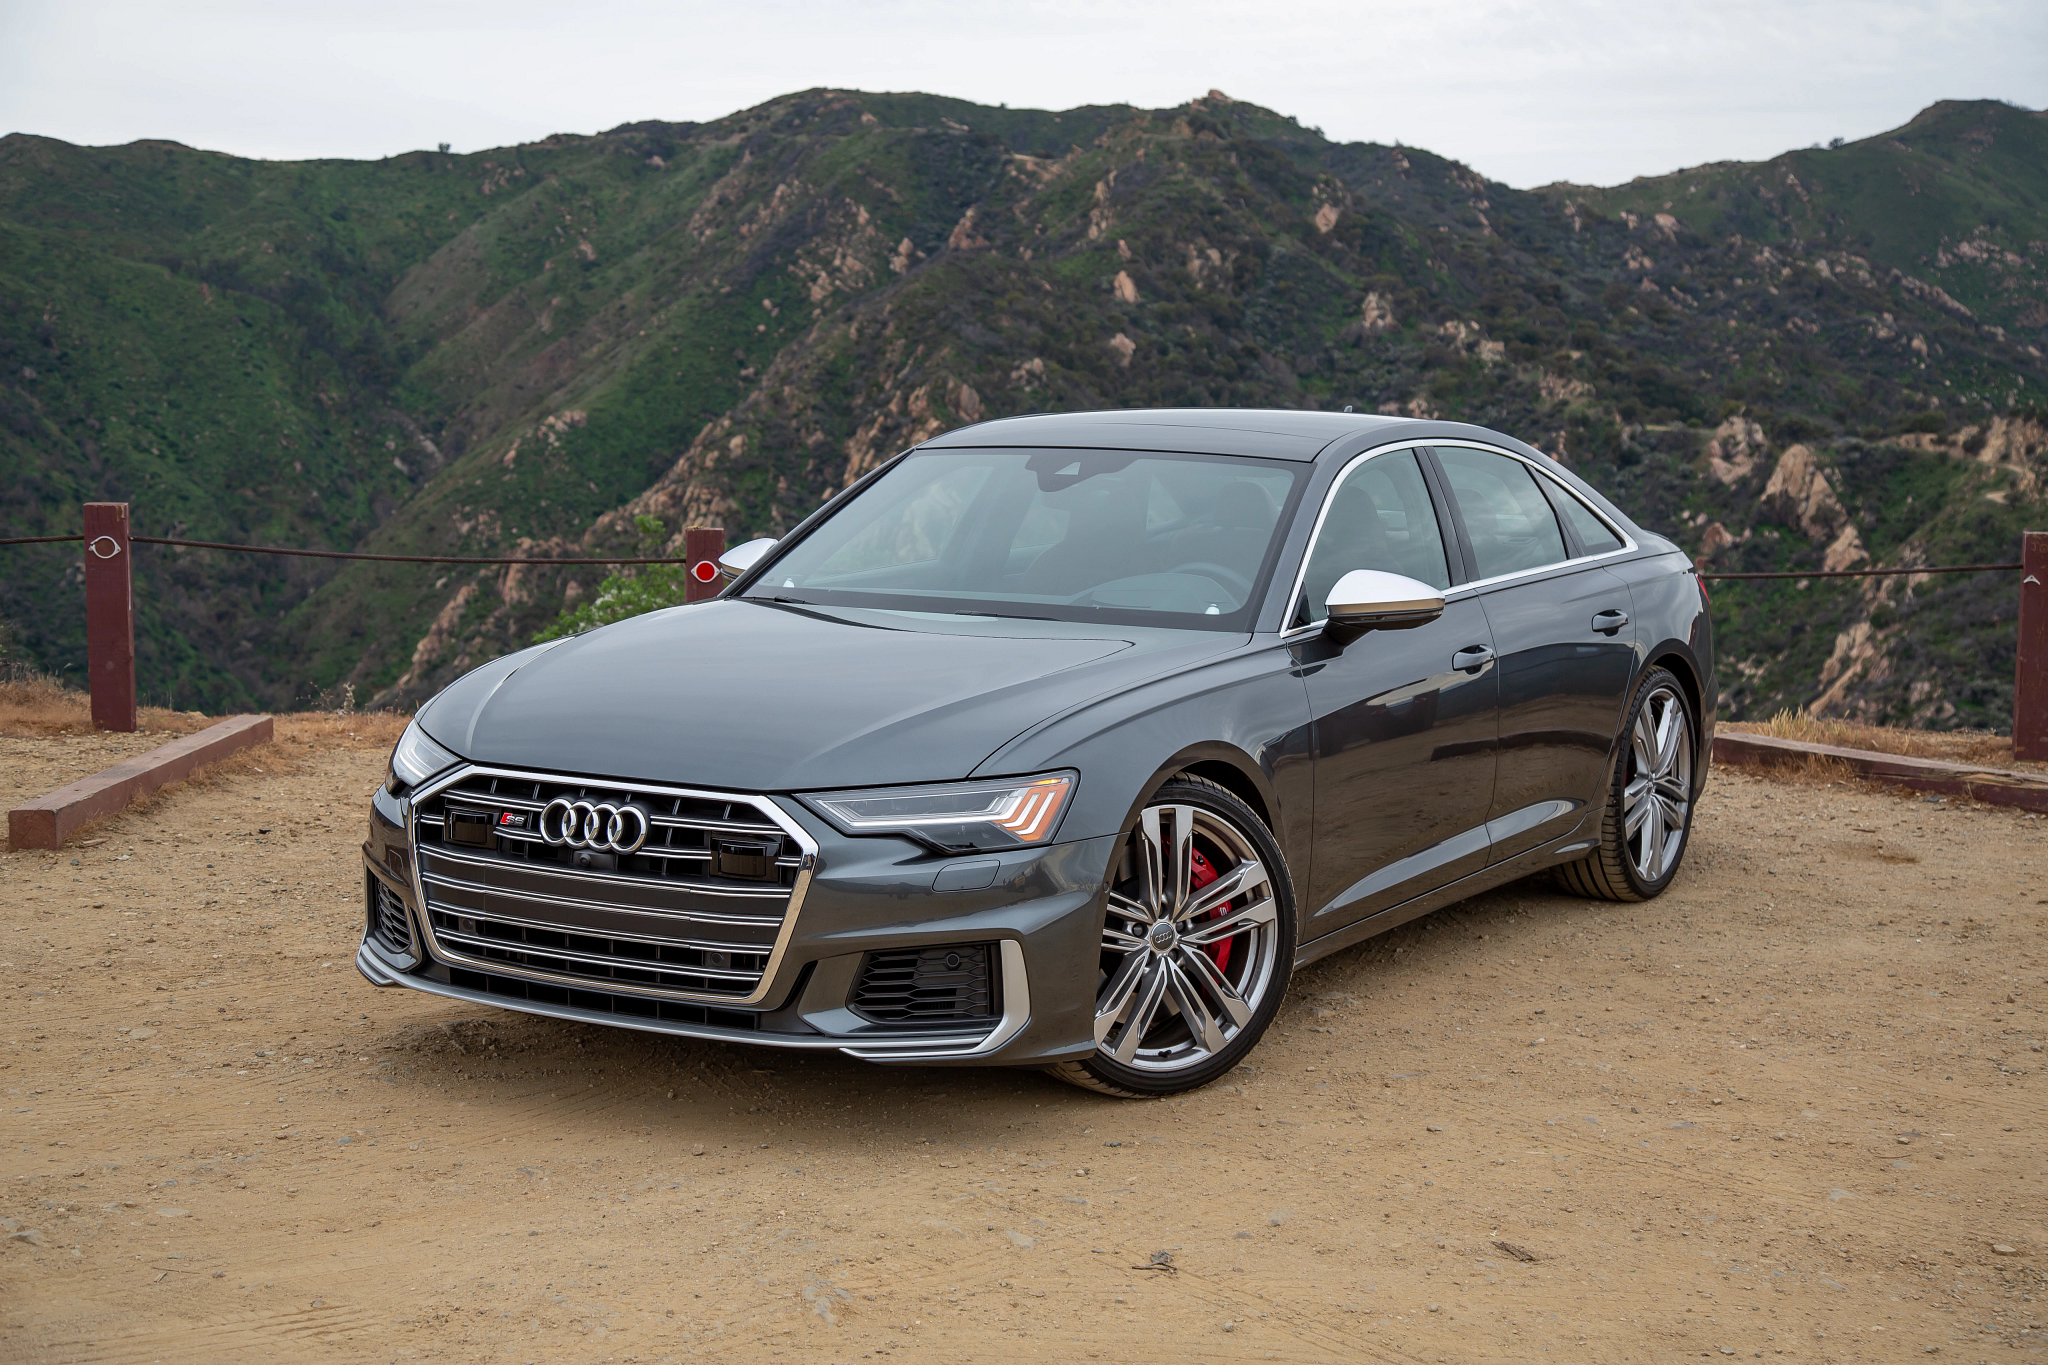 2021 Audi S6 Performance and New Engine